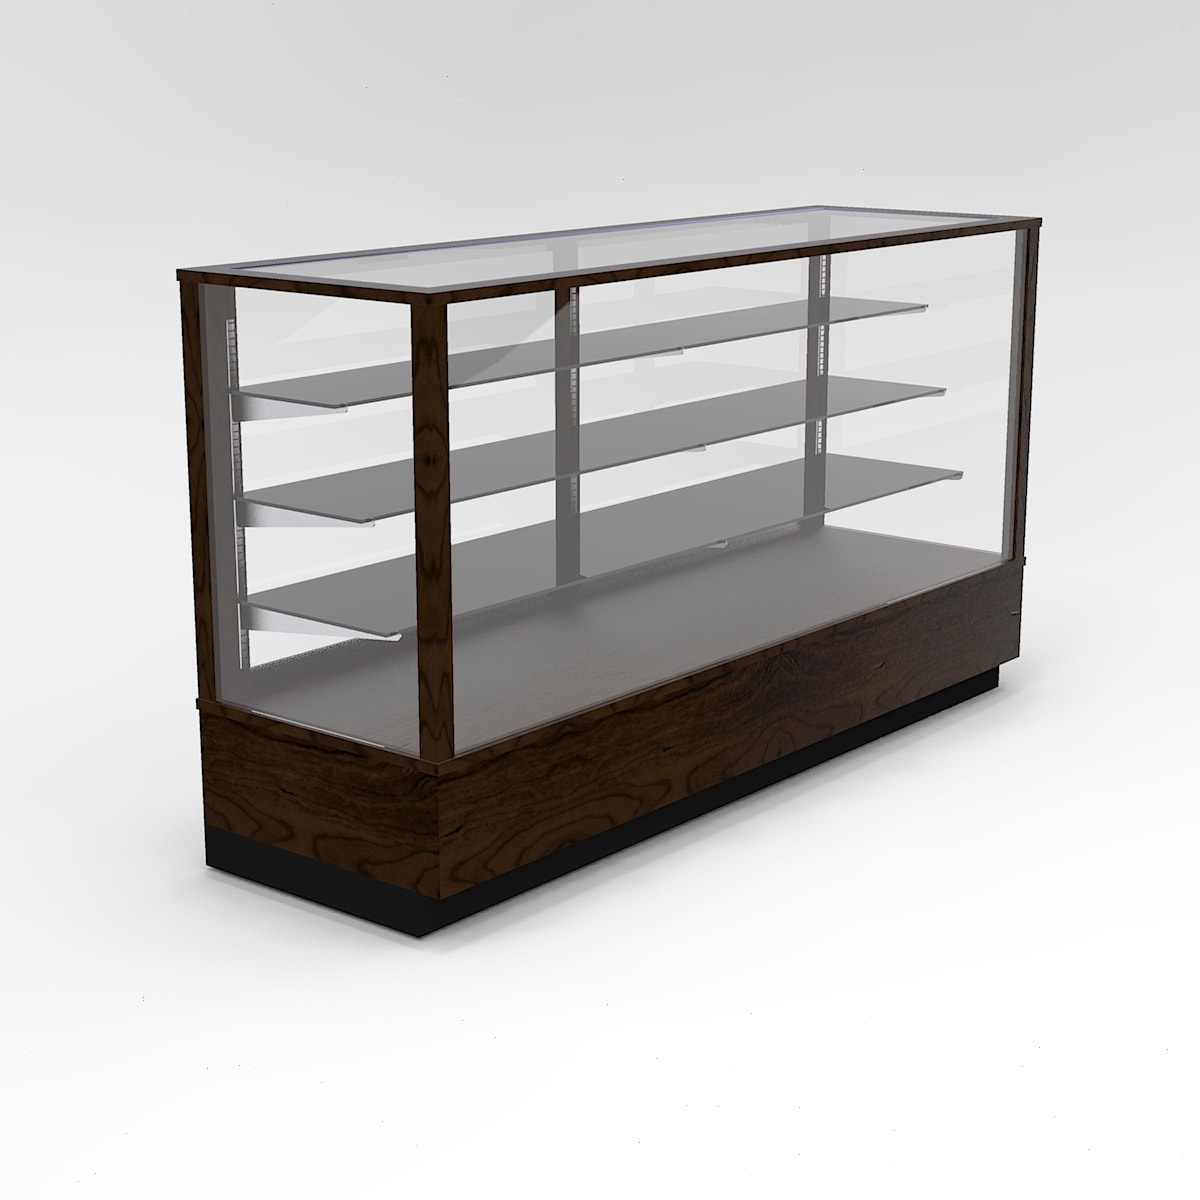 72 Inch Extra Vision Contemporary Rectangle Horizontal Display Case To Purchase